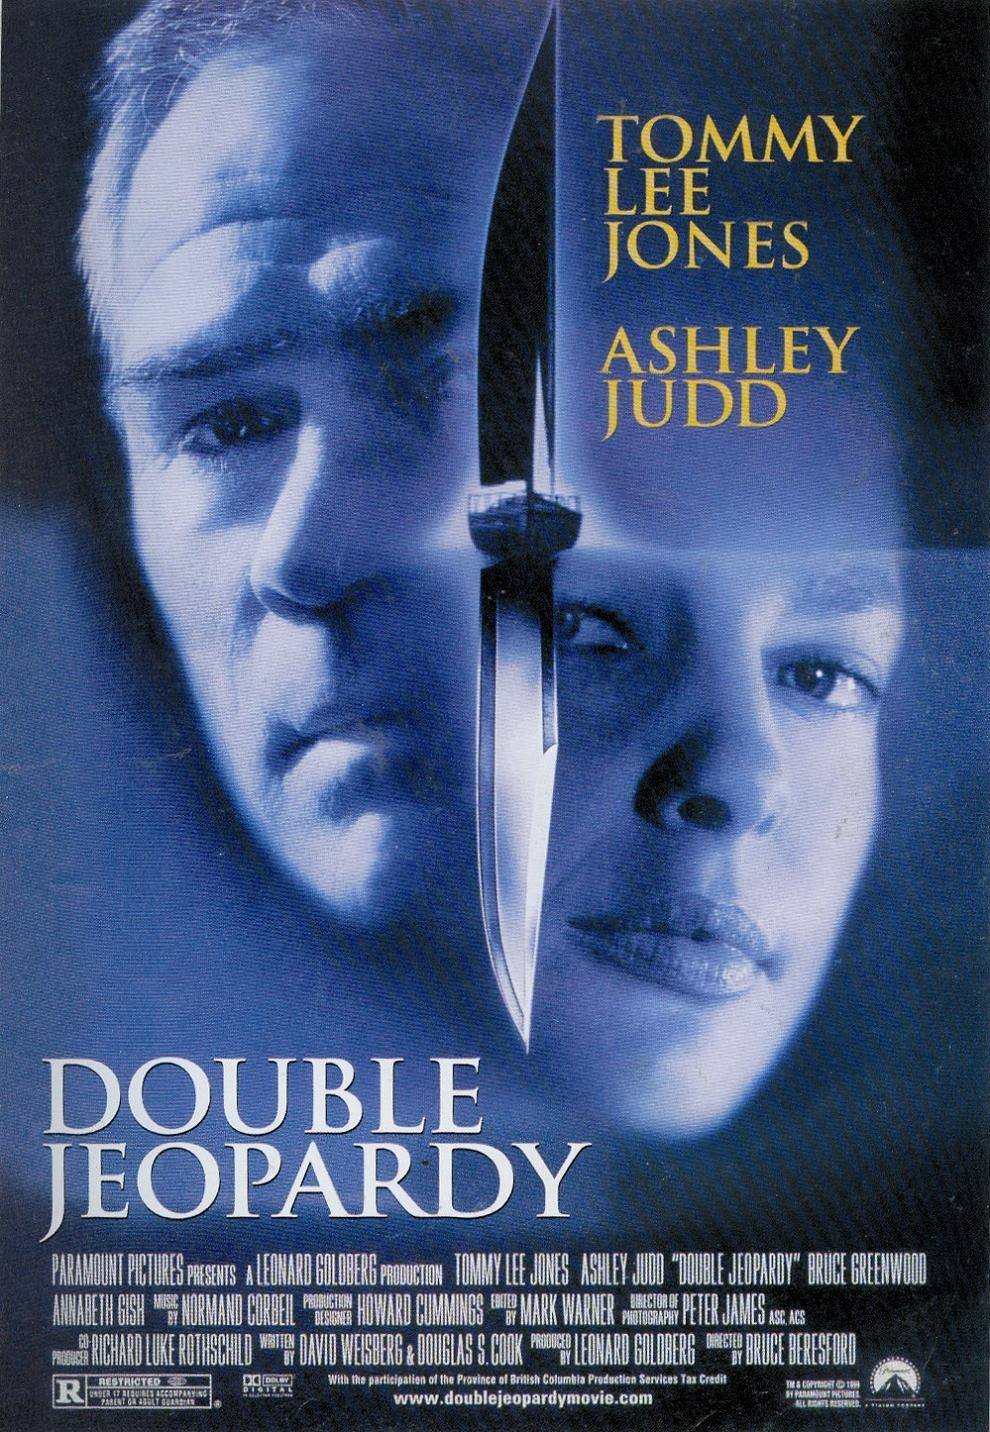 double jeopardy Double jeopardy is a 1999 american neo noir adventure crime thriller film directed by bruce beresford and starring tommy lee jones, ashley judd, and bruce greenwood.